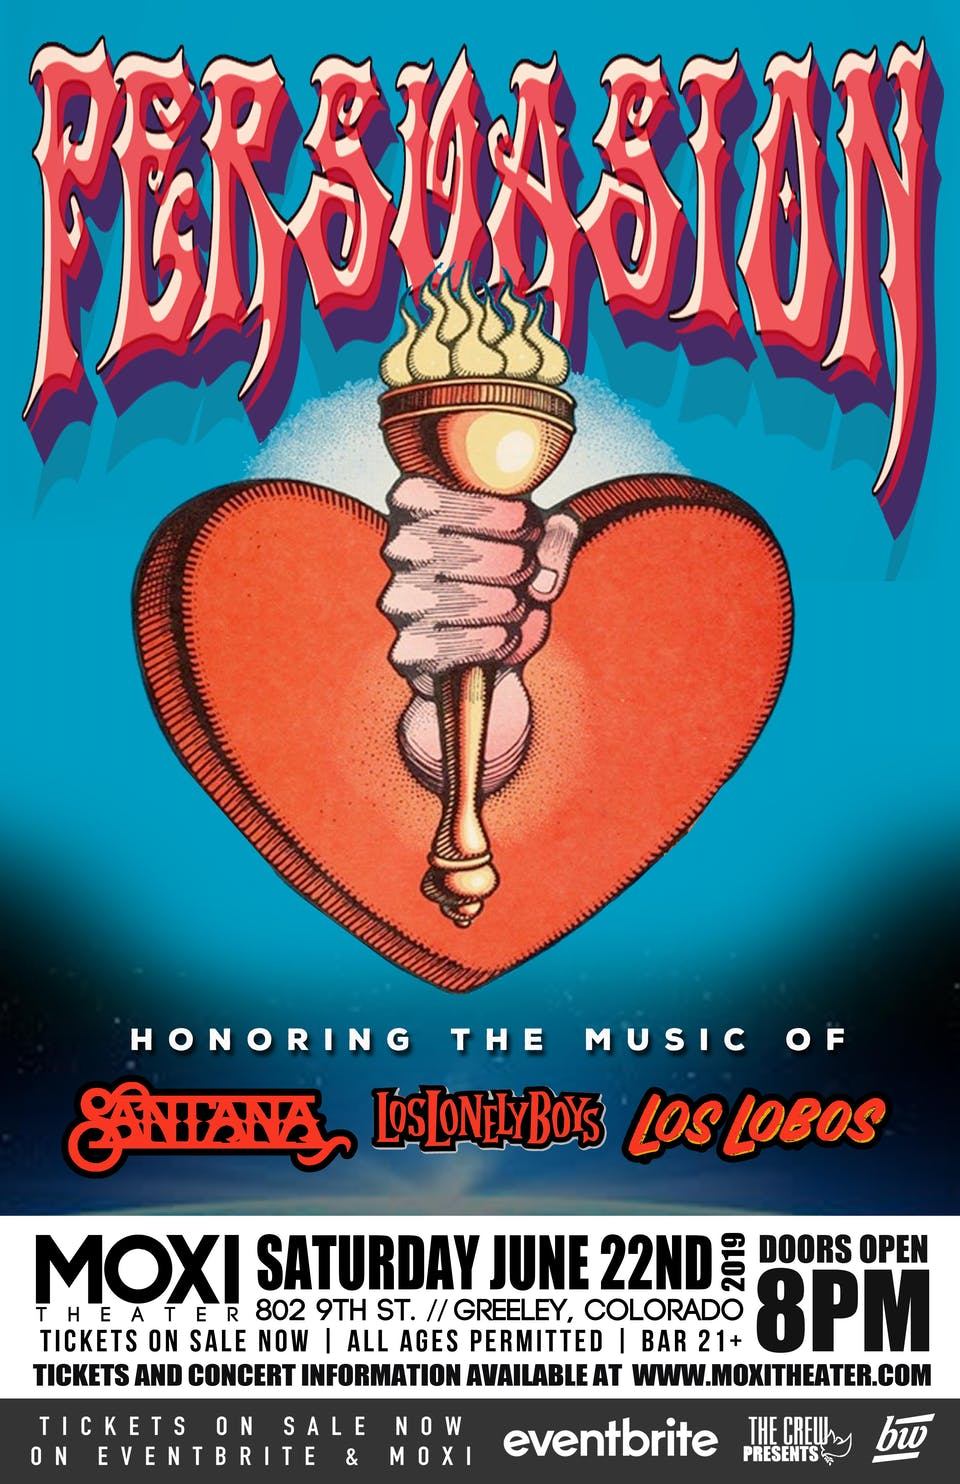 Persuasion - Honoring the Music of Santana, Los Lobos, and Los Lonely Boys